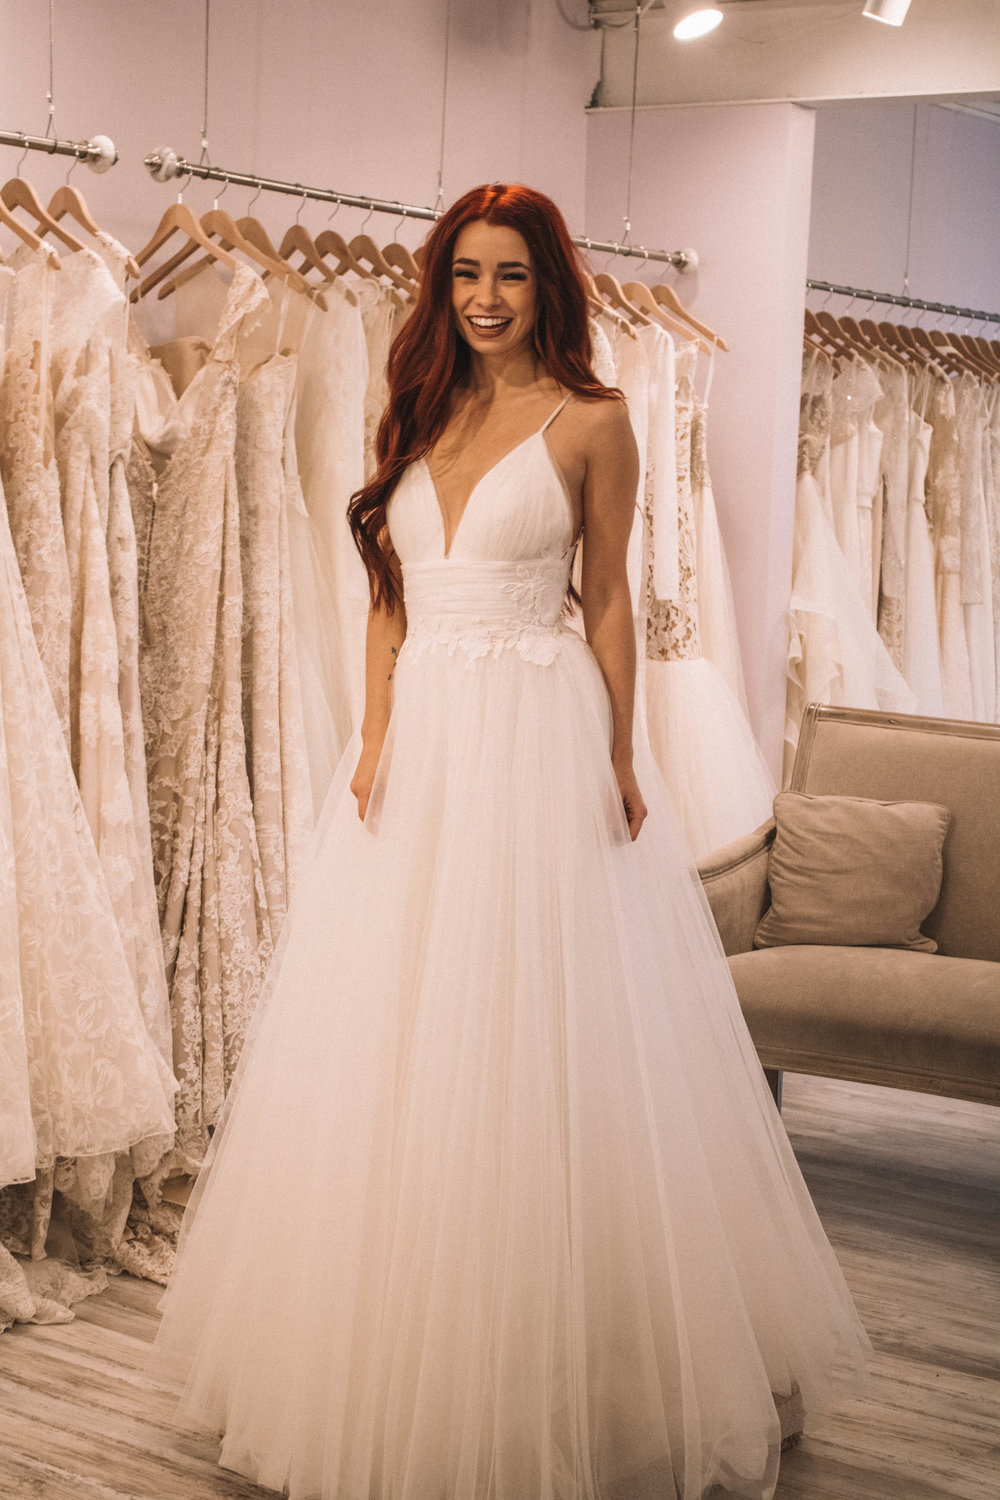 Shop small for the Holidays: LUXEredux Bridal featured by top Indianapolis life and style blog, Trendy in Indy